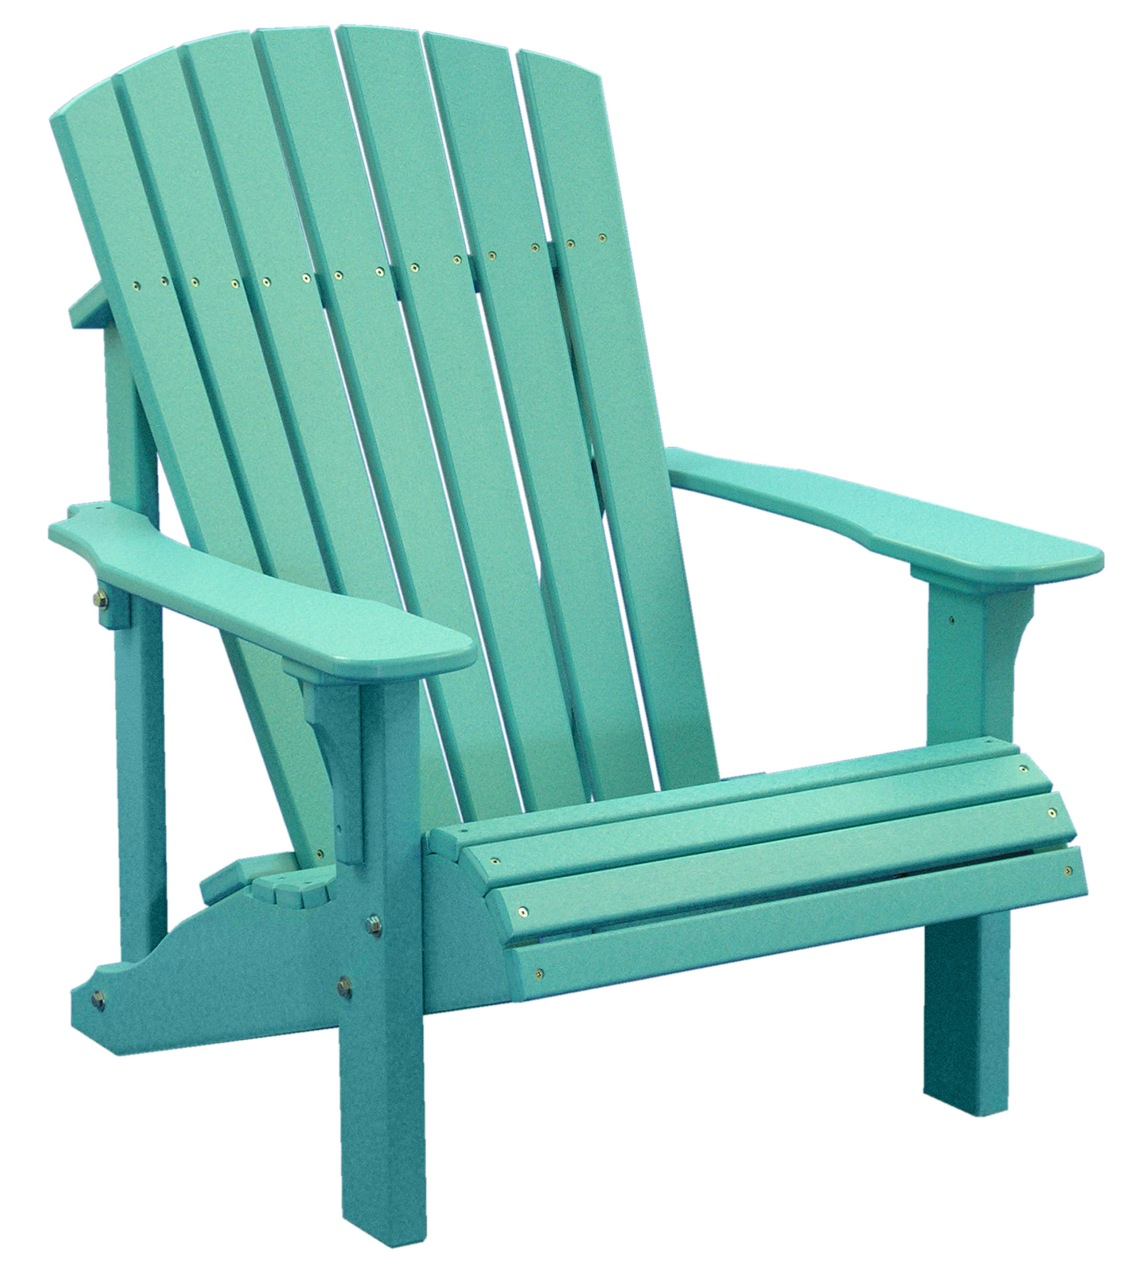 1134x1280 Sofa Appealing Adirondack Chairs Clipart Beach Chair Clip Art